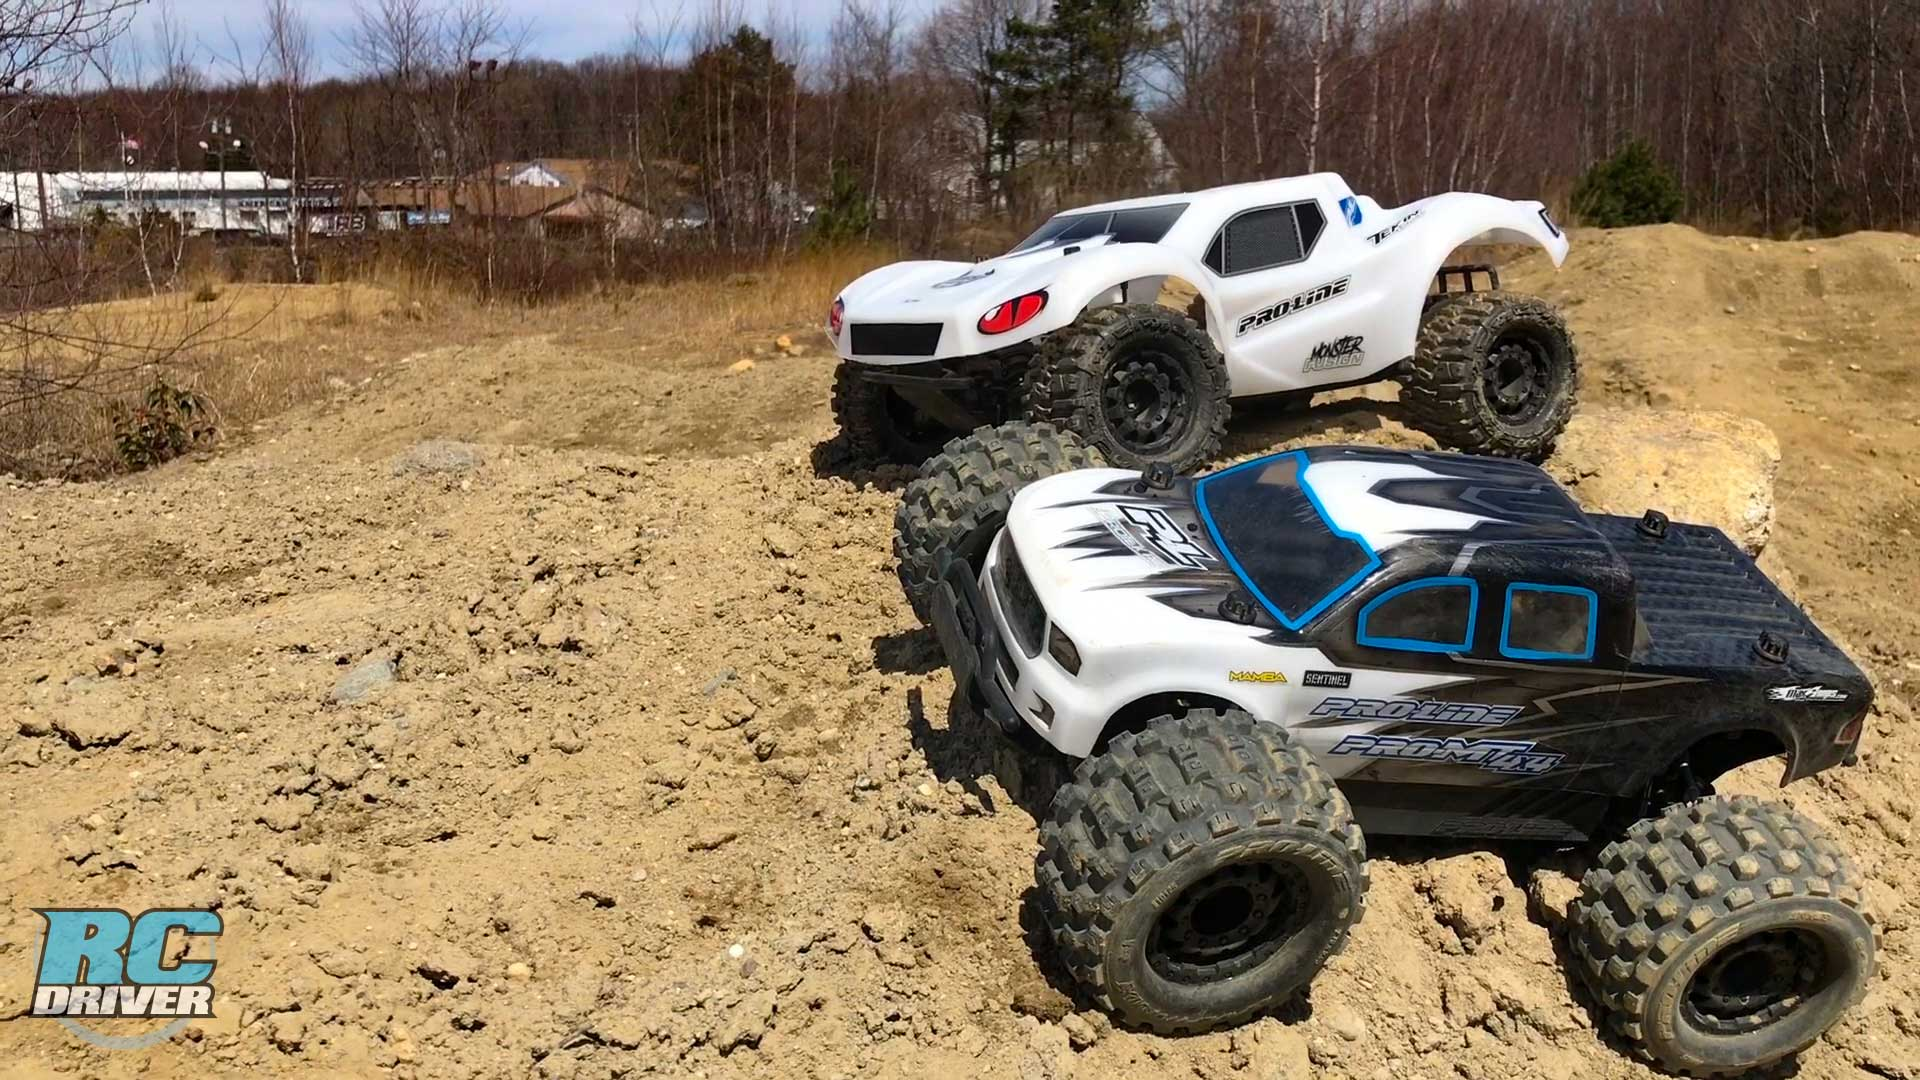 Play Time With The Pro-Line Racing Pro-MT 4×4 & Pro-Fusion SC 4×4